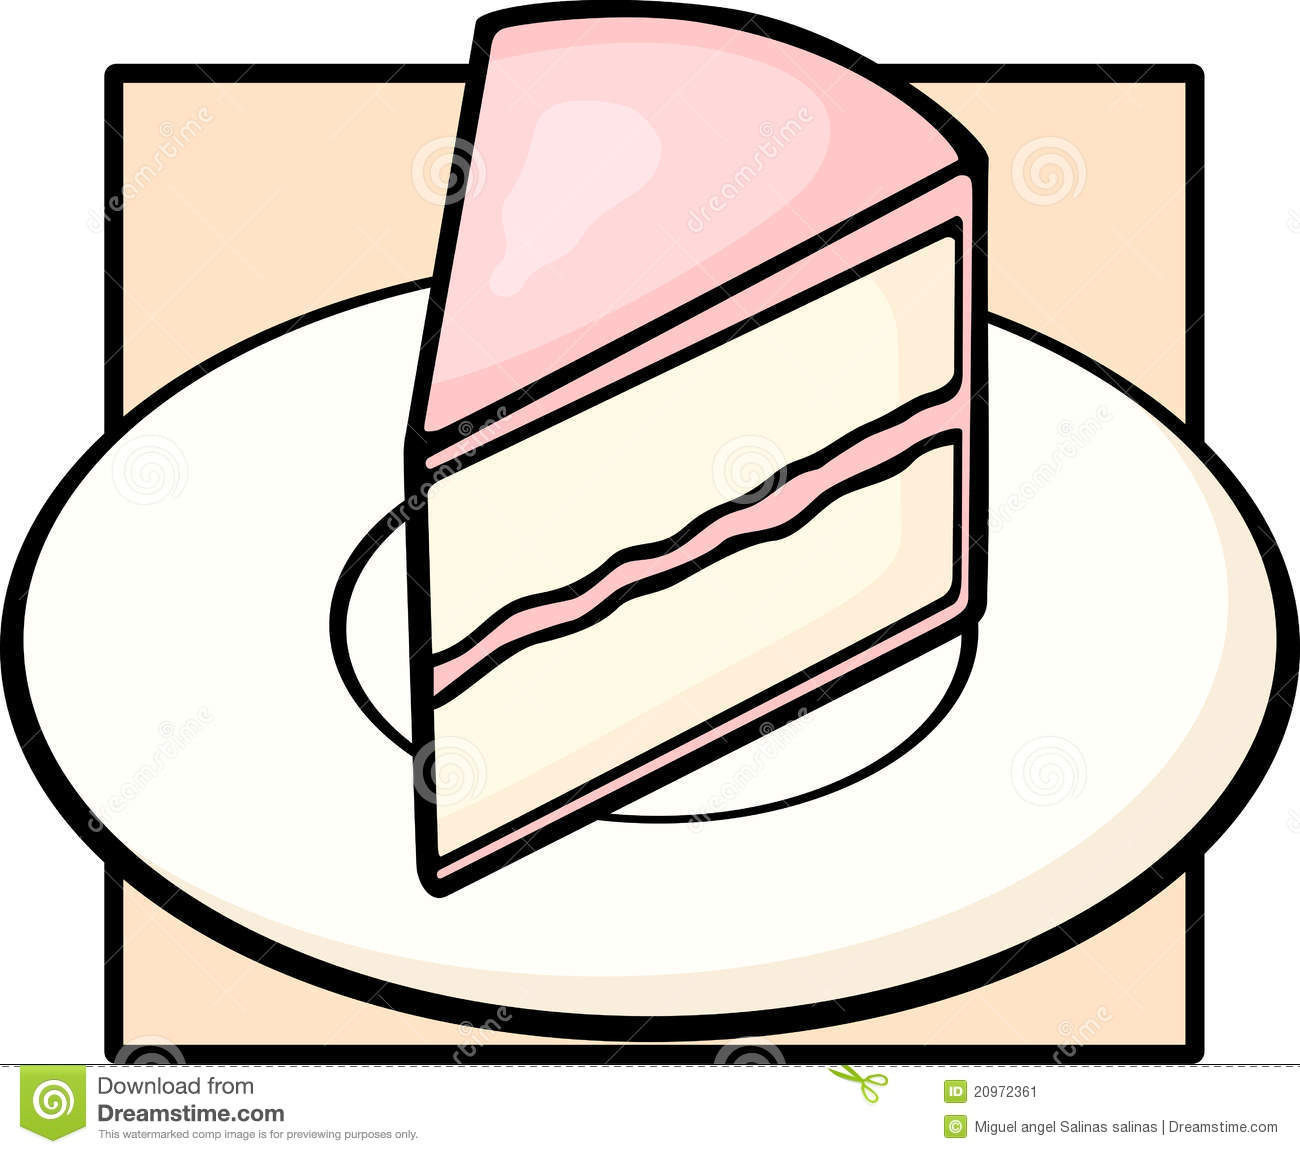 Birthday Cake Slice Clip Art Cake Slice Dish 20972361 Jpg